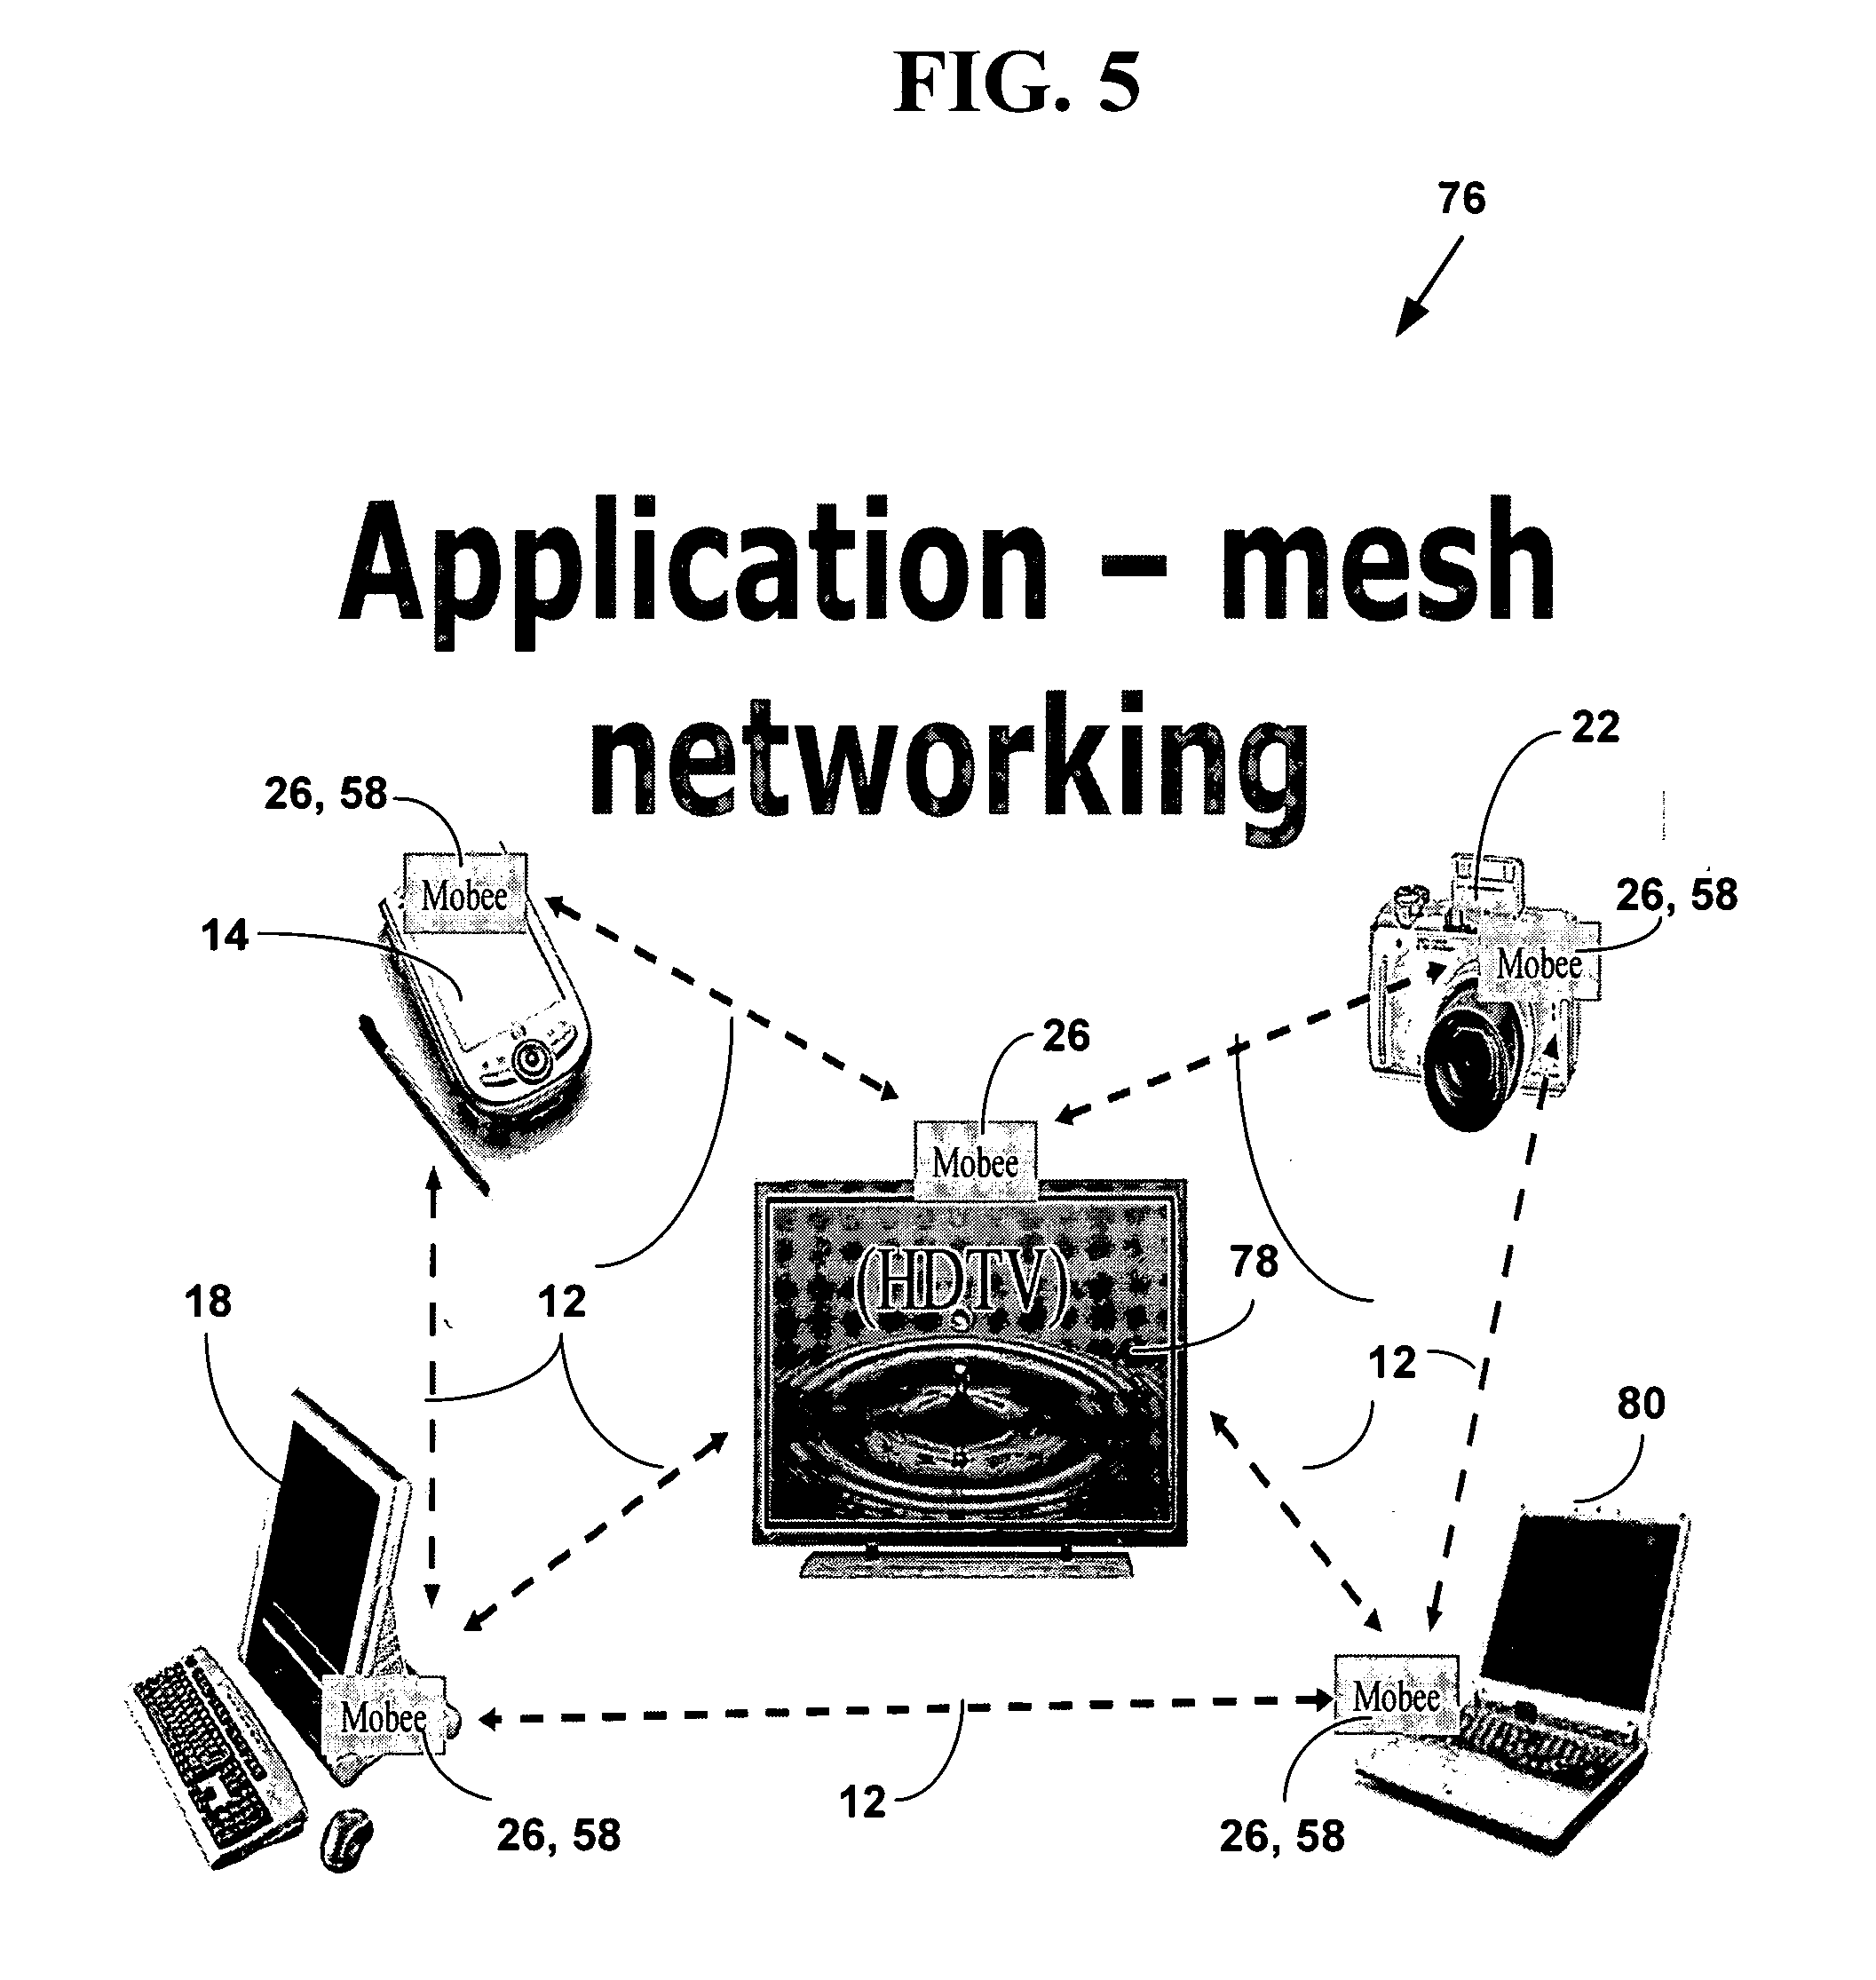 patent us20060182076 - method and system for mesh network embeded devices